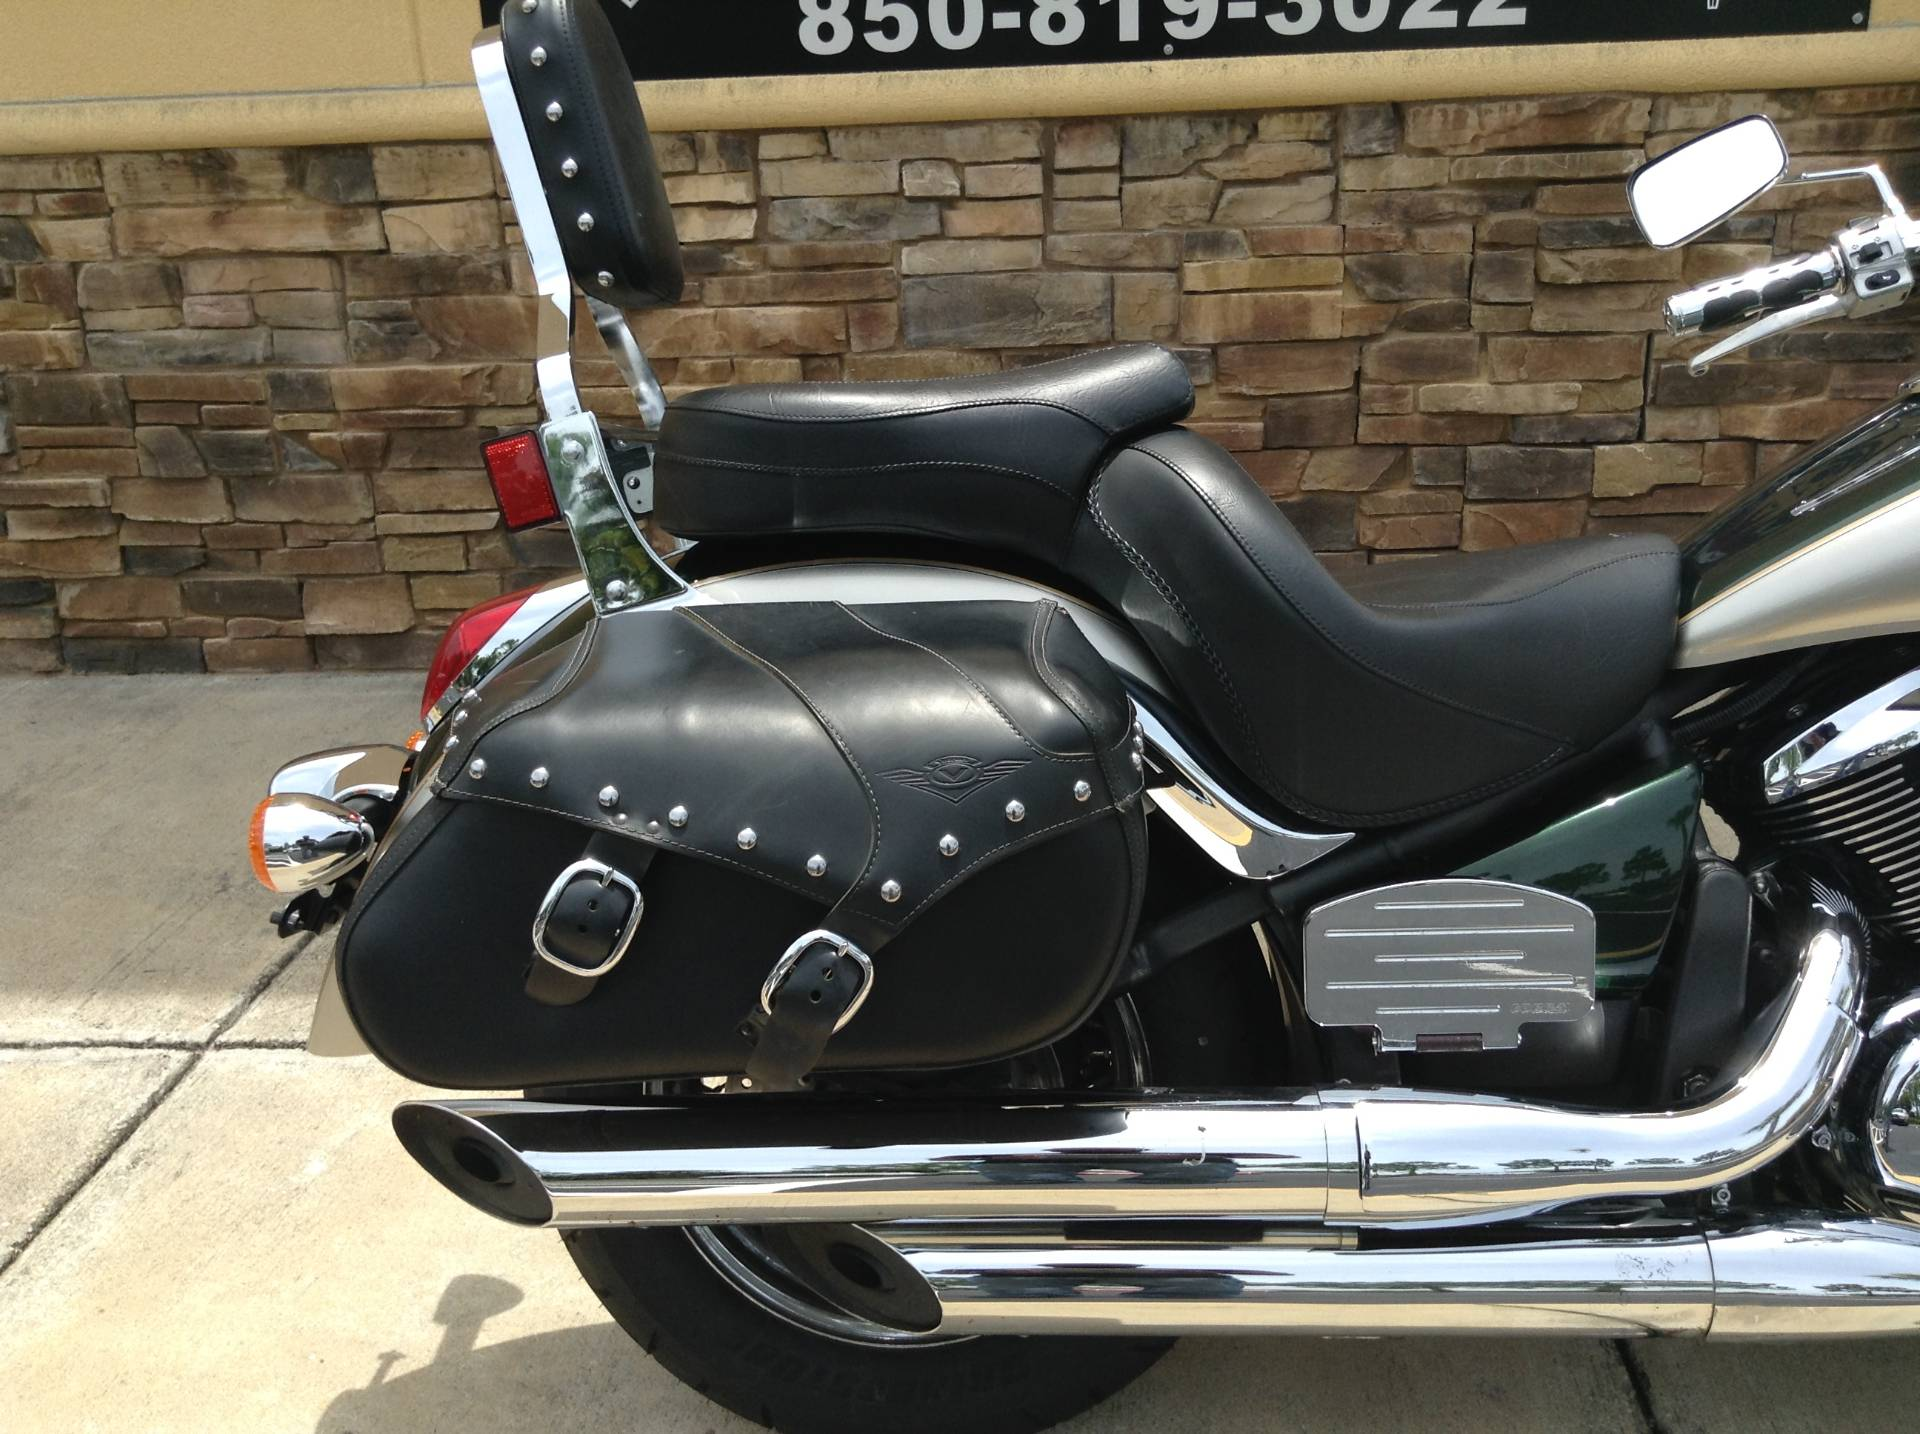 2010 KAWASAKI Vulcan 900 in Panama City Beach, Florida